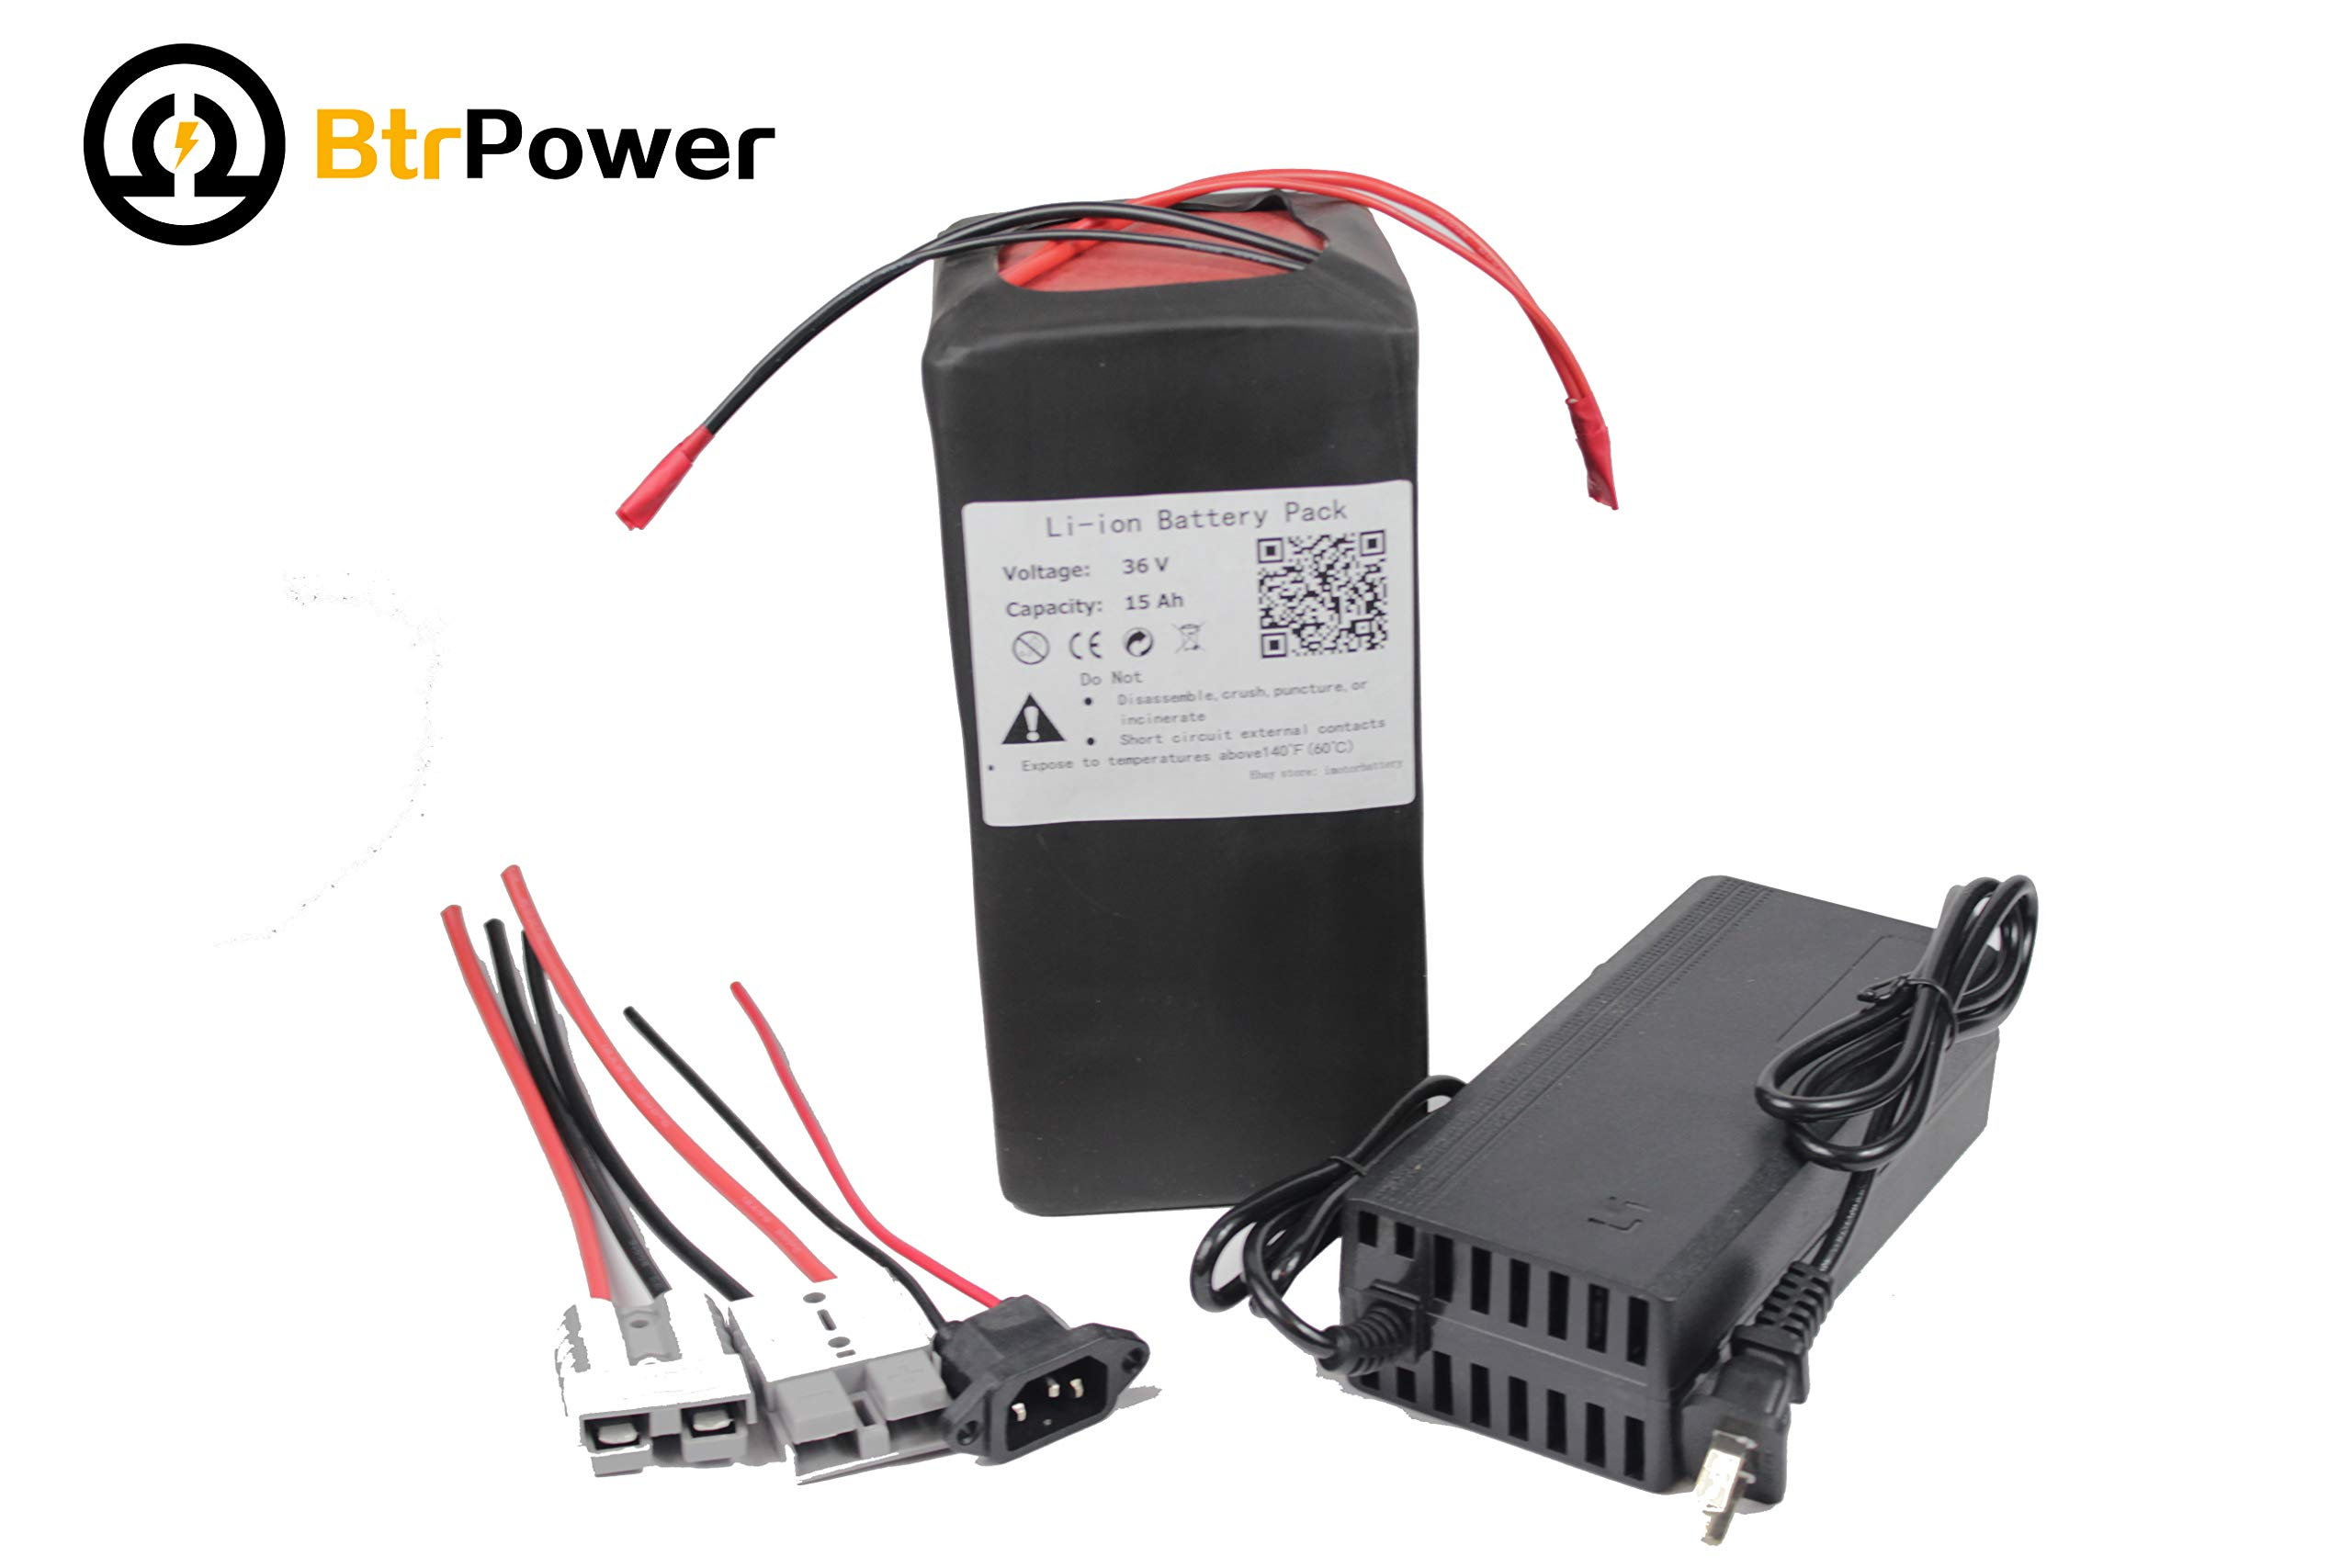 BtrPower 36V 10Ah 15Ah Ebike Battery Lithium ion LiFeO4 Battery with 3A Battery Charger Suitable for 500w 750w Scooter Electric Bike Motor (36V 15Ah)